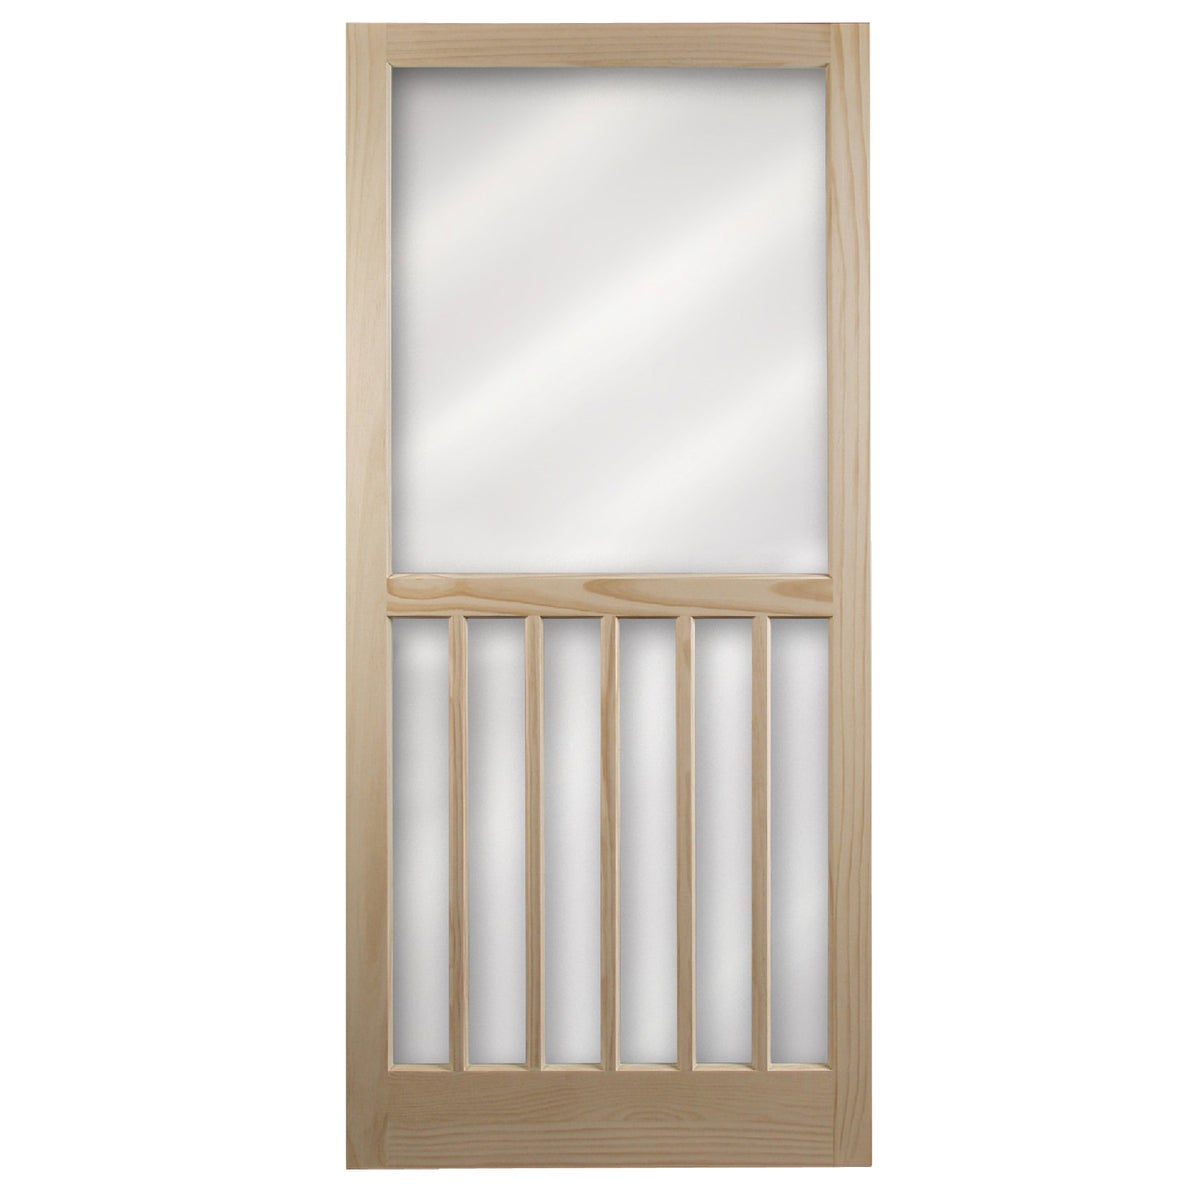 "32"" 5-BAR SCREEN DOOR - DSU532 by Snavely Internatl"